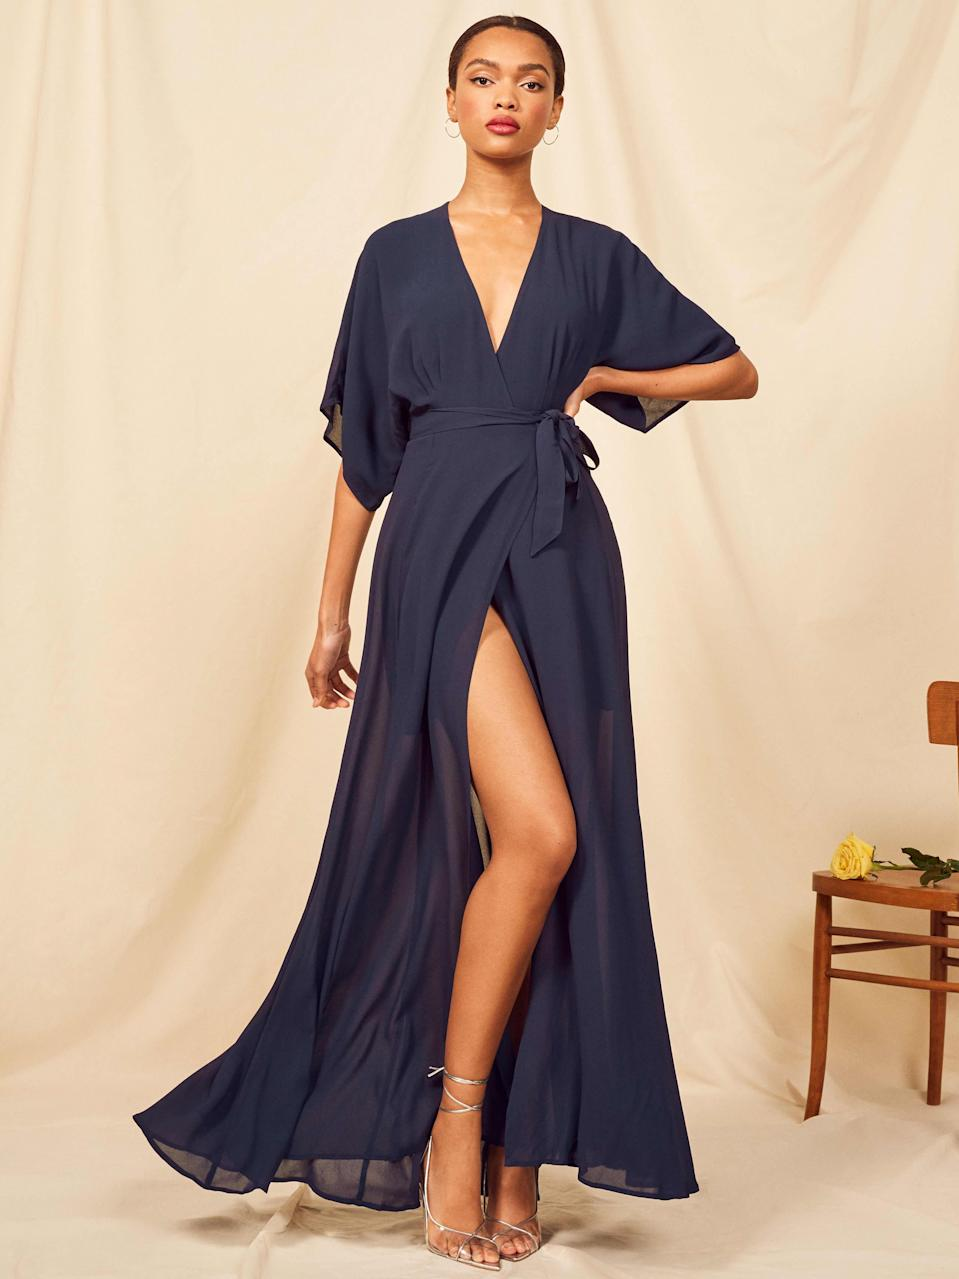 """<h3><strong>Reformation</strong></h3><br><strong>Price Range:</strong> $198 - $428<br><strong>Size Range:</strong> XS - XL<br><br>Reformation delivers gowns dripping with nonchalant romantic vibes. Be prepared to float down the aisle in lightweight, sheer georgette and dance the night away in comfort. The higher cost means you'll want to commit to wearing this one more than a few times over, which is something we can count on when it comes to a Reformation dress. Or, bringing it back to our earlier suggestion, check out <a href=""""https://www.renttherunway.com/pages/designers/reformation/products?sort=priceAsc#1553473618953"""" rel=""""nofollow noopener"""" target=""""_blank"""" data-ylk=""""slk:Rent the Runway"""" class=""""link rapid-noclick-resp"""">Rent the Runway</a> to borrow instead of buy your <a href=""""https://www.renttherunway.com/pages/designers/reformation/"""" rel=""""nofollow noopener"""" target=""""_blank"""" data-ylk=""""slk:Reformation"""" class=""""link rapid-noclick-resp"""">Reformation</a> dress at a fraction of the cost.<br><br><em>Shop </em><strong><a href=""""https://www.thereformation.com/categories/bridesmaids"""" rel=""""nofollow noopener"""" target=""""_blank"""" data-ylk=""""slk:Reformation"""" class=""""link rapid-noclick-resp""""><span><em>Reformation</em></span></a></strong><br><br><strong>Reformation</strong> Winslow Dress, $, available at <a href=""""https://go.skimresources.com/?id=30283X879131&url=https%3A%2F%2Fwww.thereformation.com%2Fproducts%2Fwinslow-dress%3F"""" rel=""""nofollow noopener"""" target=""""_blank"""" data-ylk=""""slk:Reformation"""" class=""""link rapid-noclick-resp"""">Reformation</a><br><br><strong>Reformation</strong> Winslow Dress (rent), $, available at <a href=""""https://go.skimresources.com/?id=30283X879131&url=https%3A%2F%2Fwww.renttherunway.com%2Fshop%2Fdesigners%2Freformation%2Fblush_winslow_maxi"""" rel=""""nofollow noopener"""" target=""""_blank"""" data-ylk=""""slk:Rent The Runway"""" class=""""link rapid-noclick-resp"""">Rent The Runway</a>"""